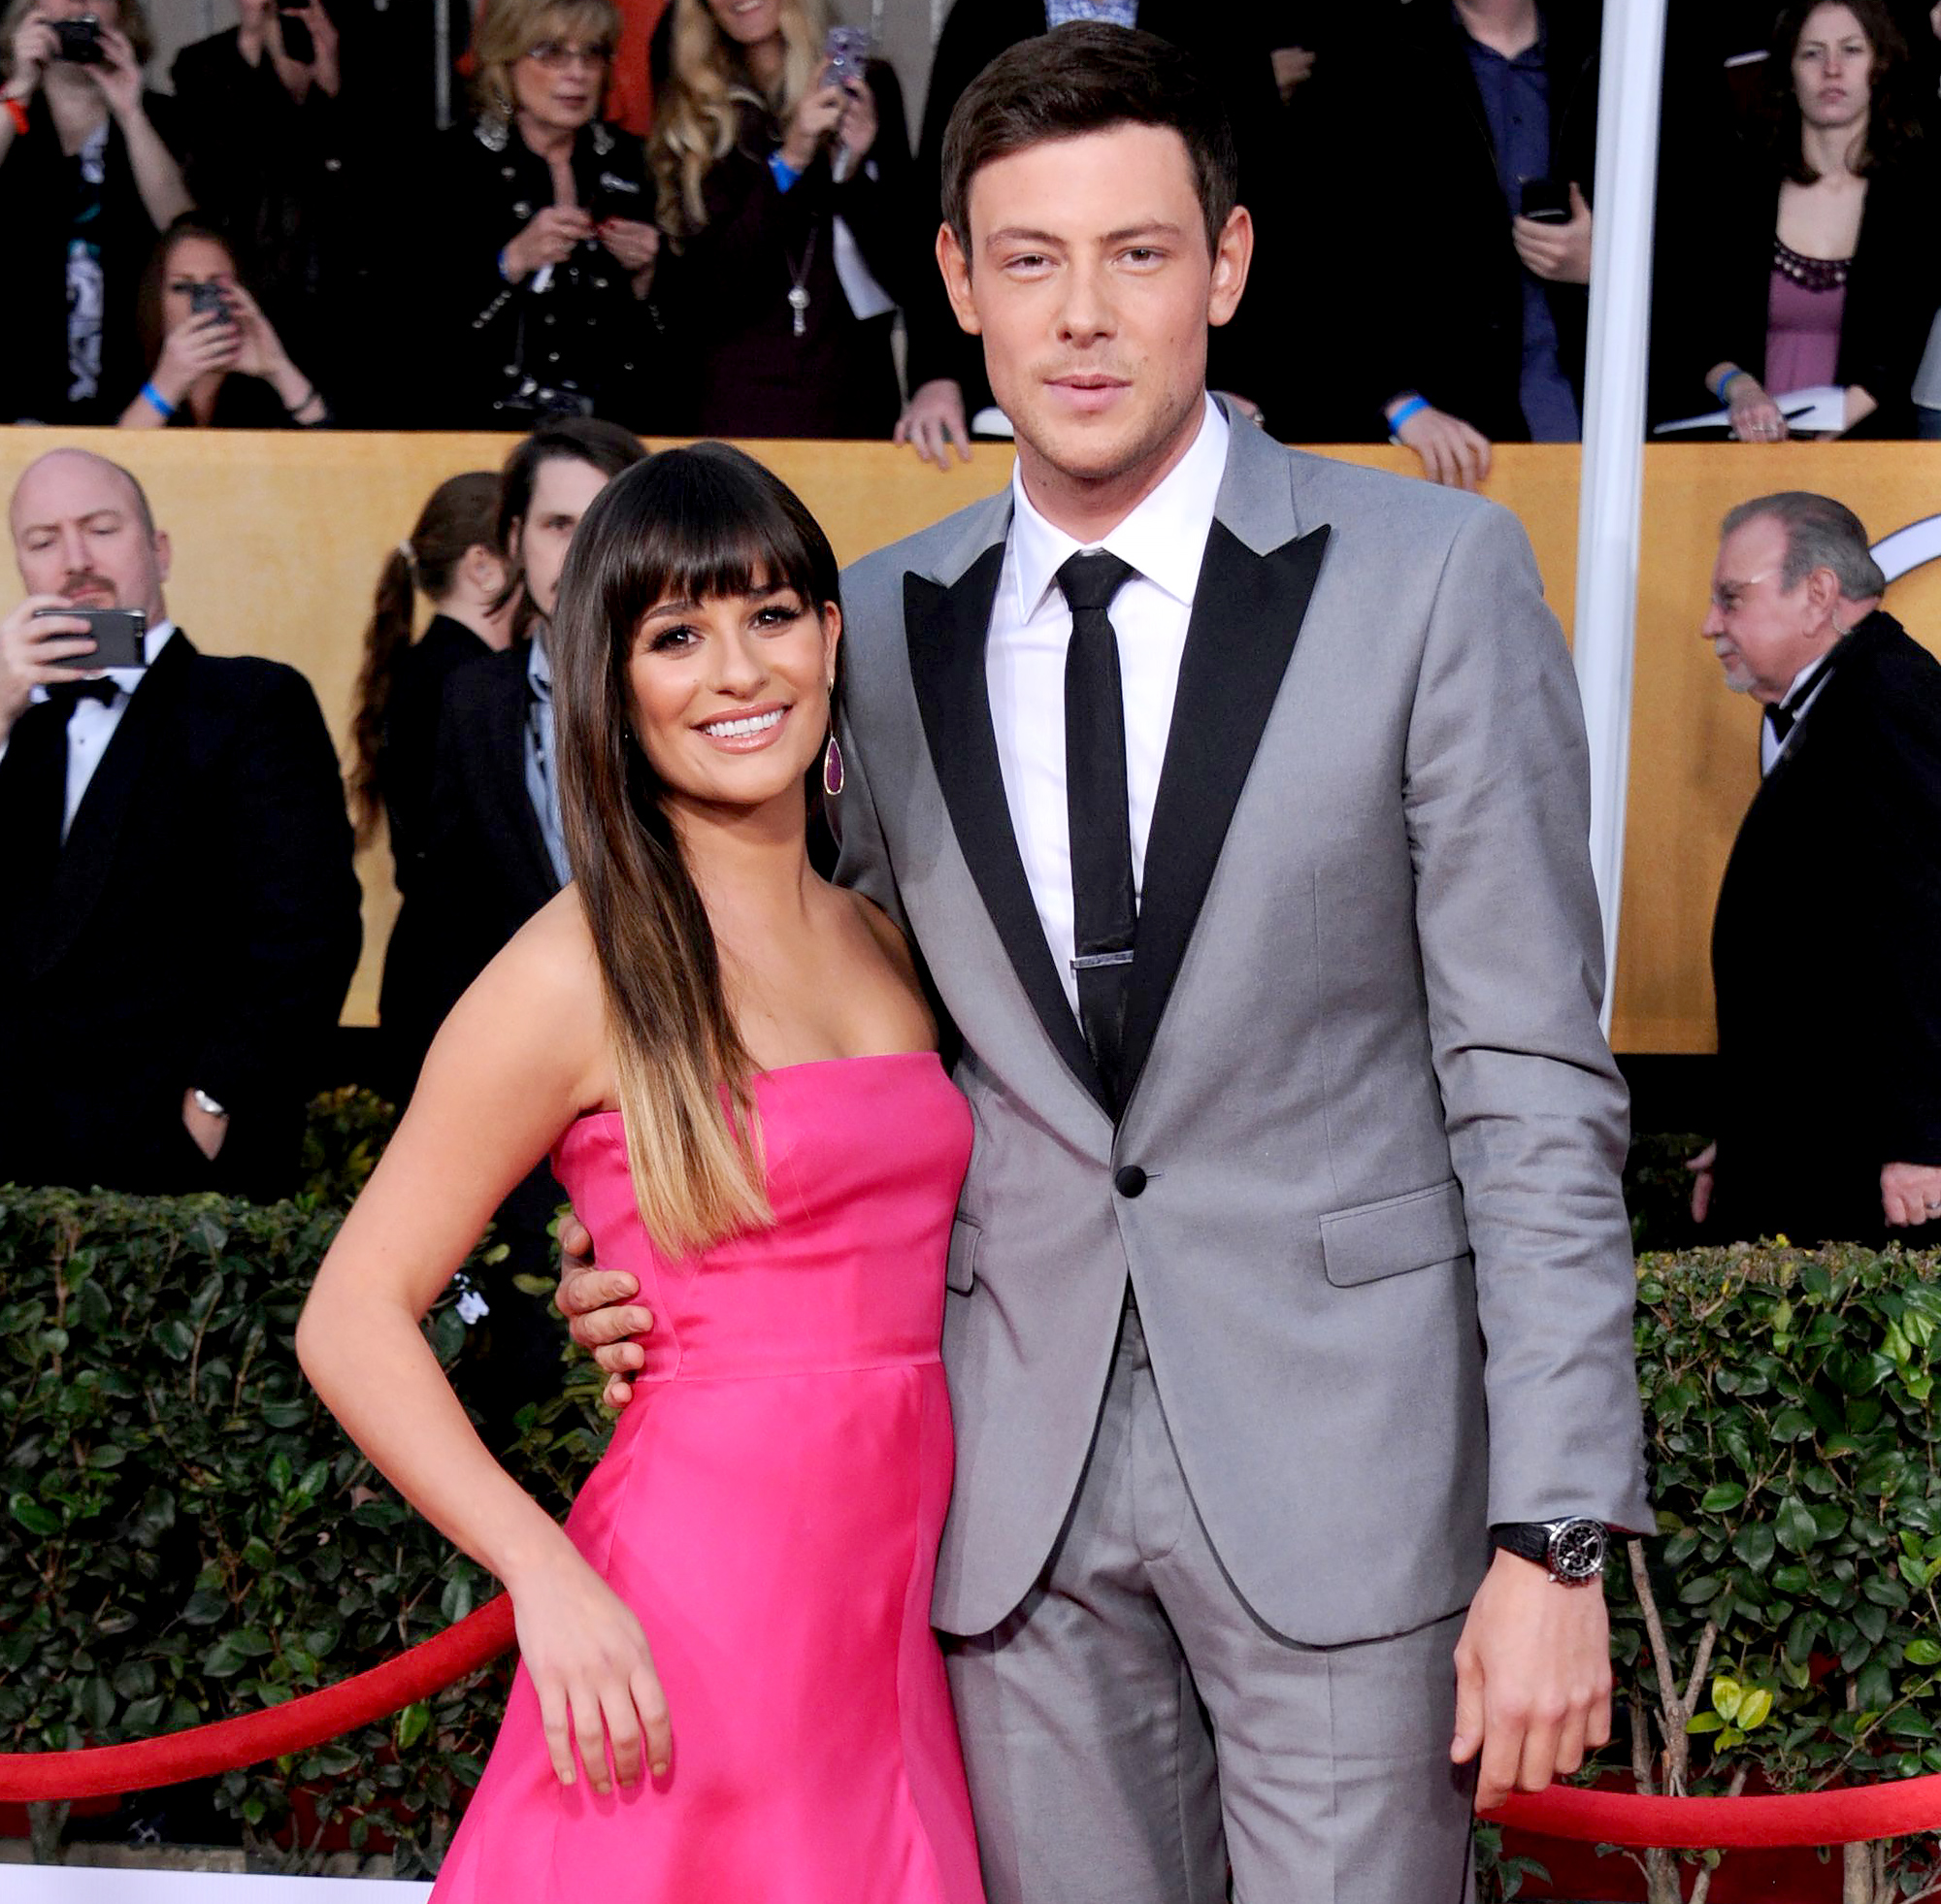 Cory Monteith Comforted Actress After Lea Michele Allegedly Called Her Ugly